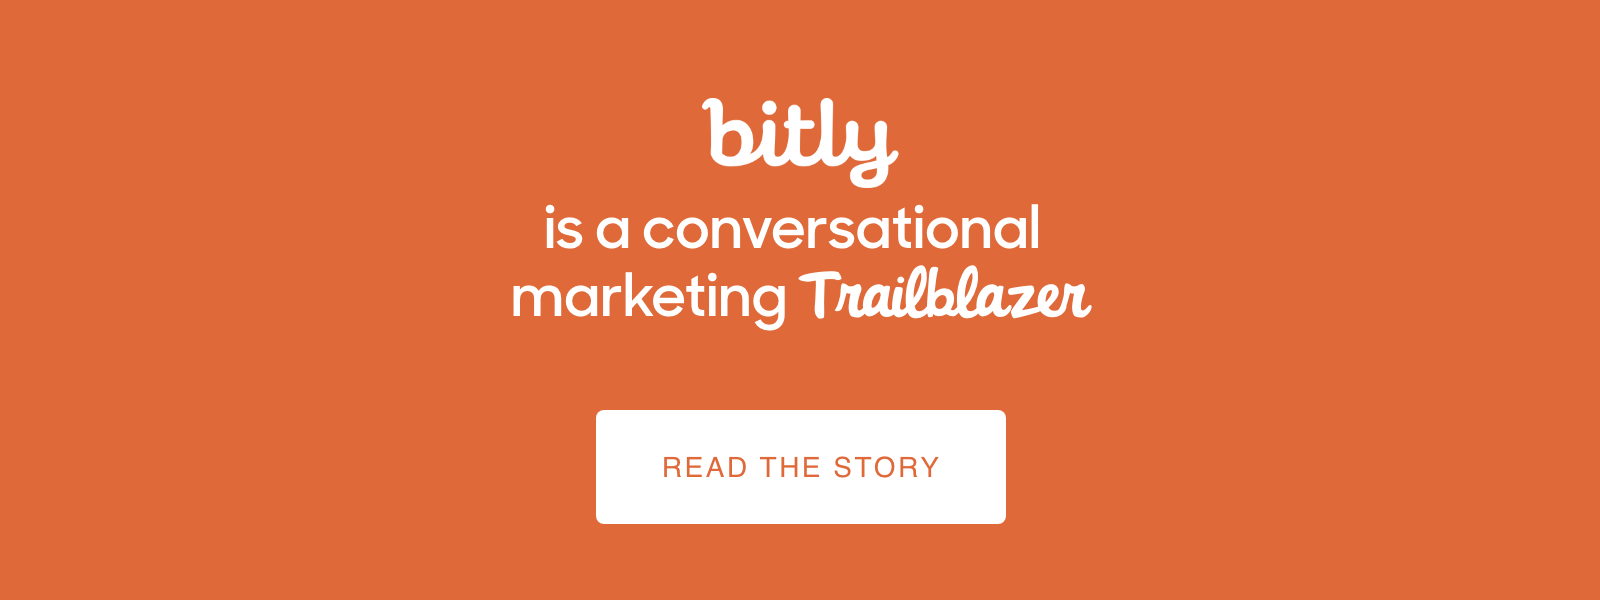 Bitly is a conversational marketing trailblazer